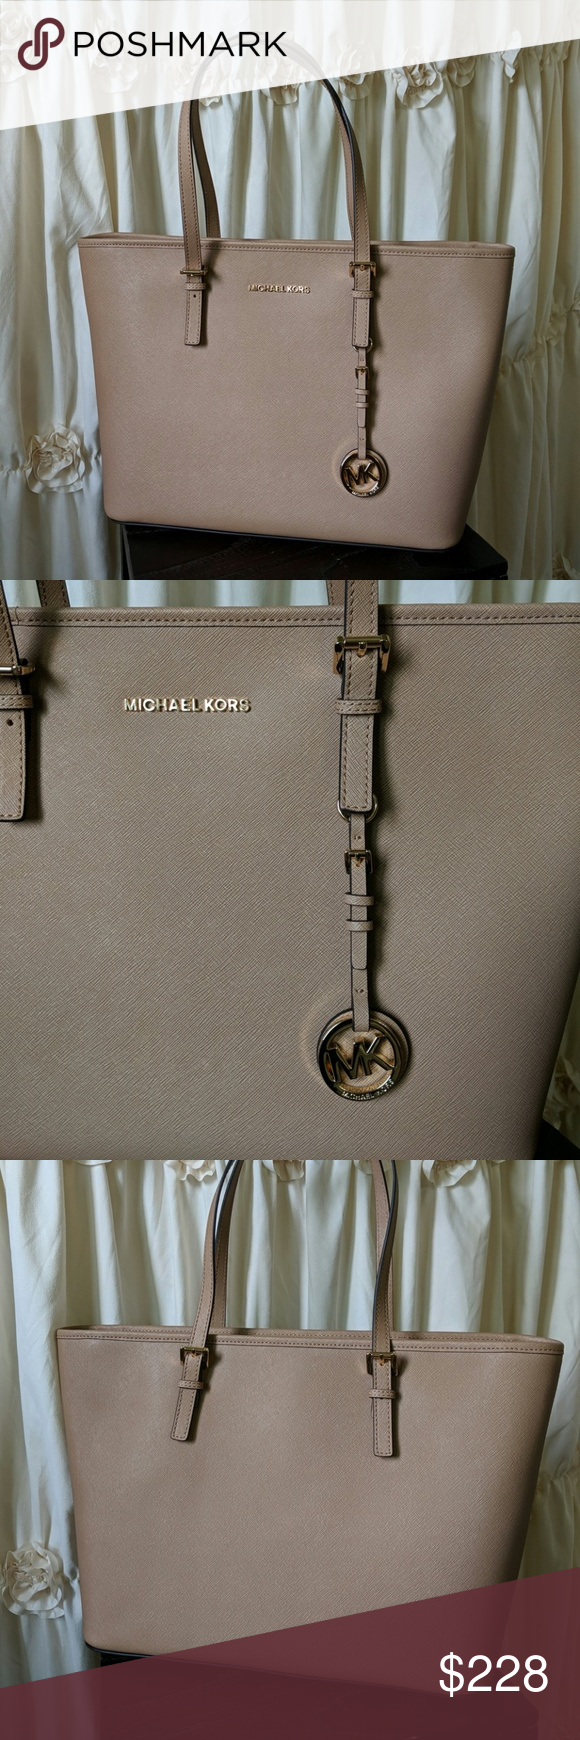 486bfab3d49 NWT Michael Kors Jet Set Travel Tote Chic, sassy and sophisticated! This  purse is